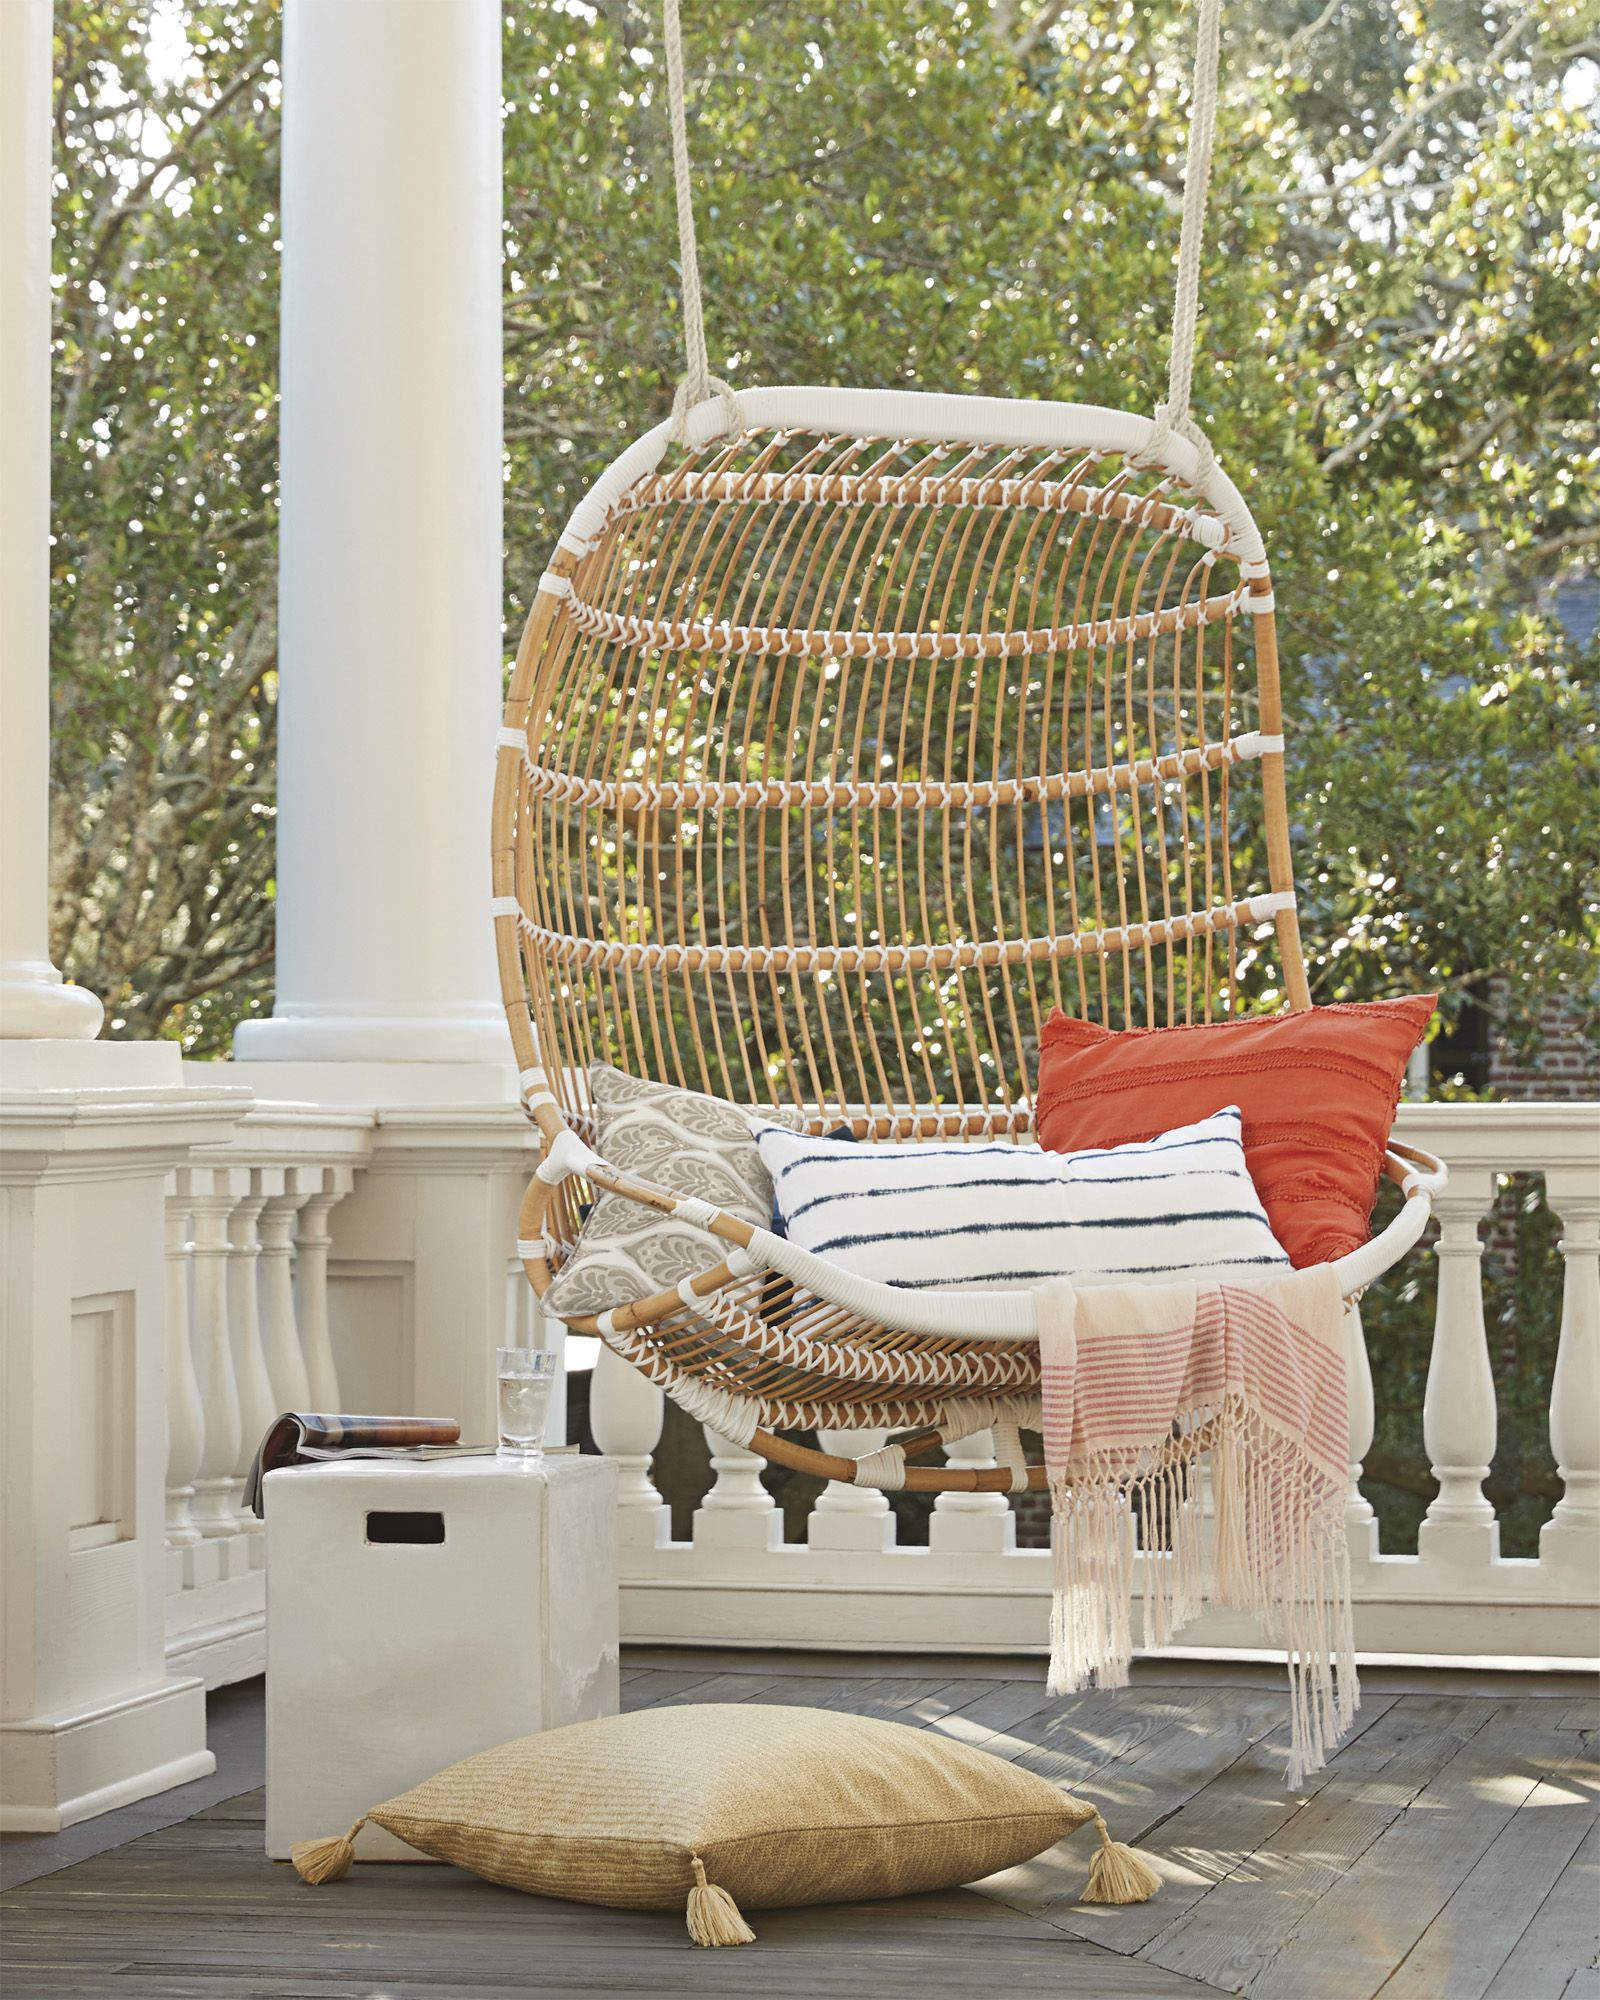 Hanging Outdoor Chairs Double Hanging Rattan Chair In 2019 Furniture Furniture